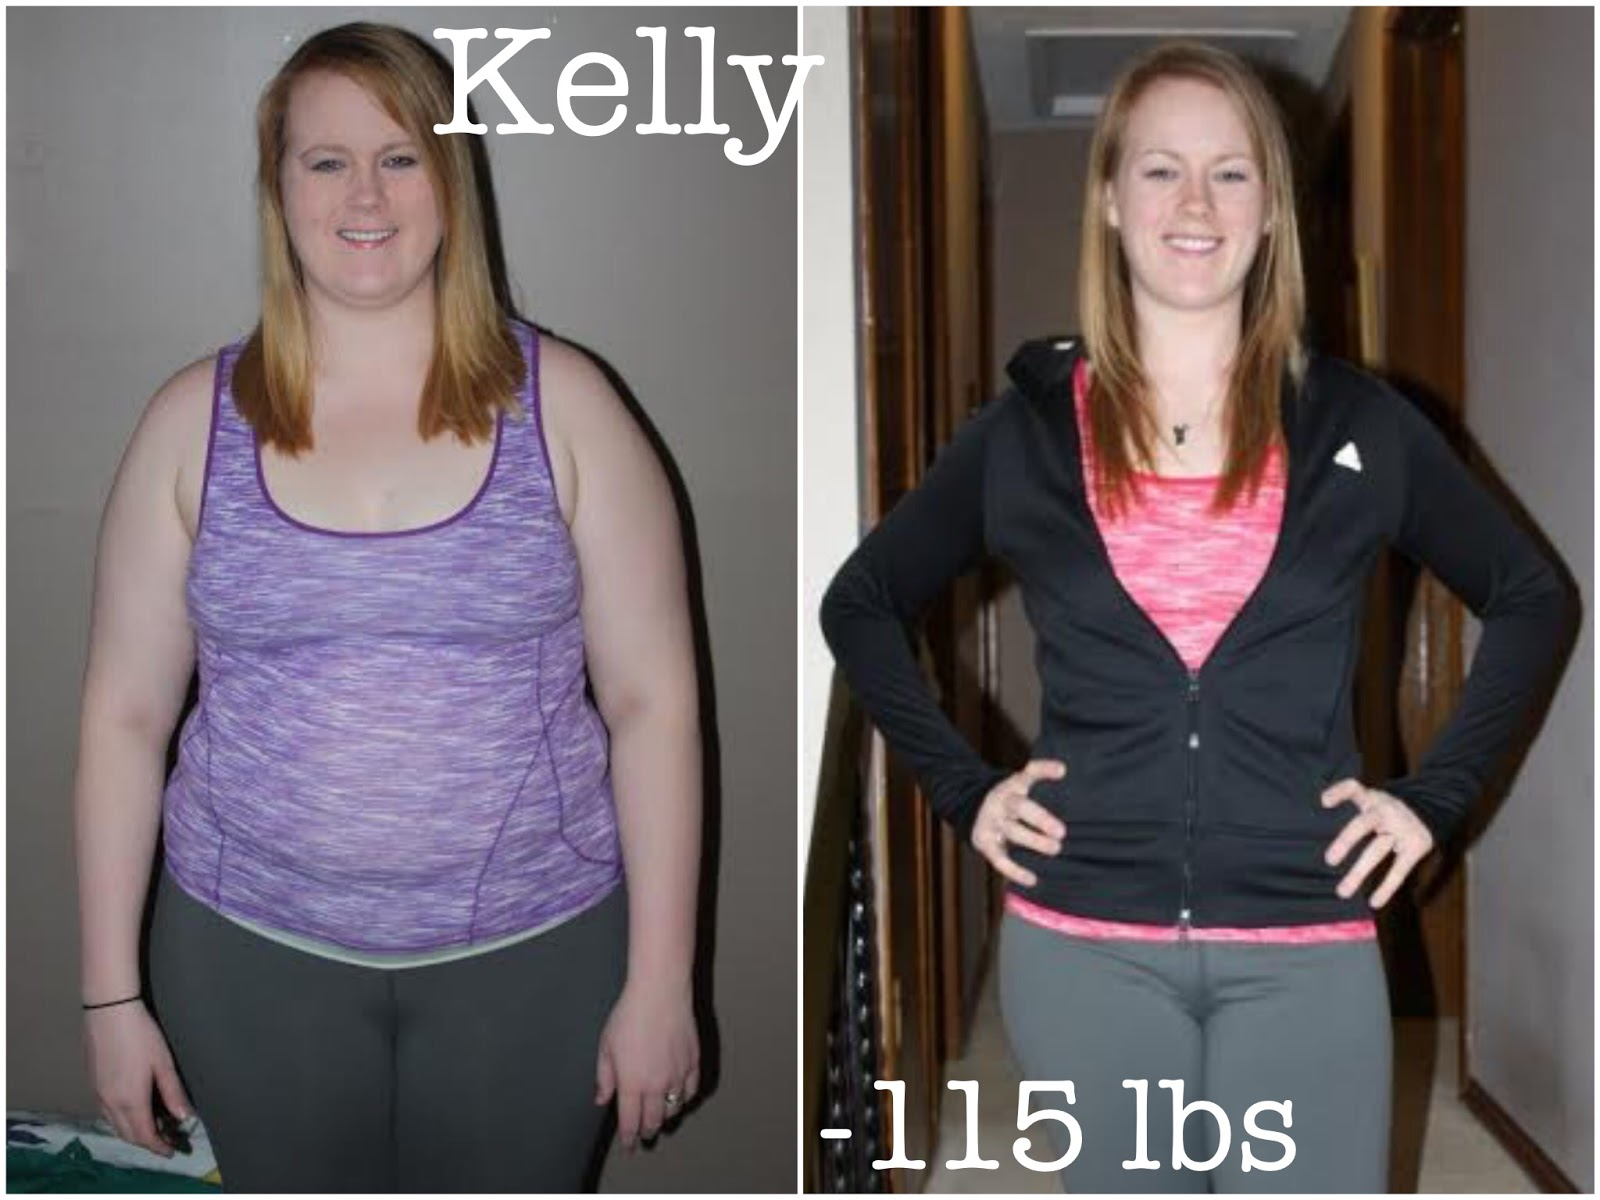 kelly age 27 occupation administrative assistant starting weight 274 ...